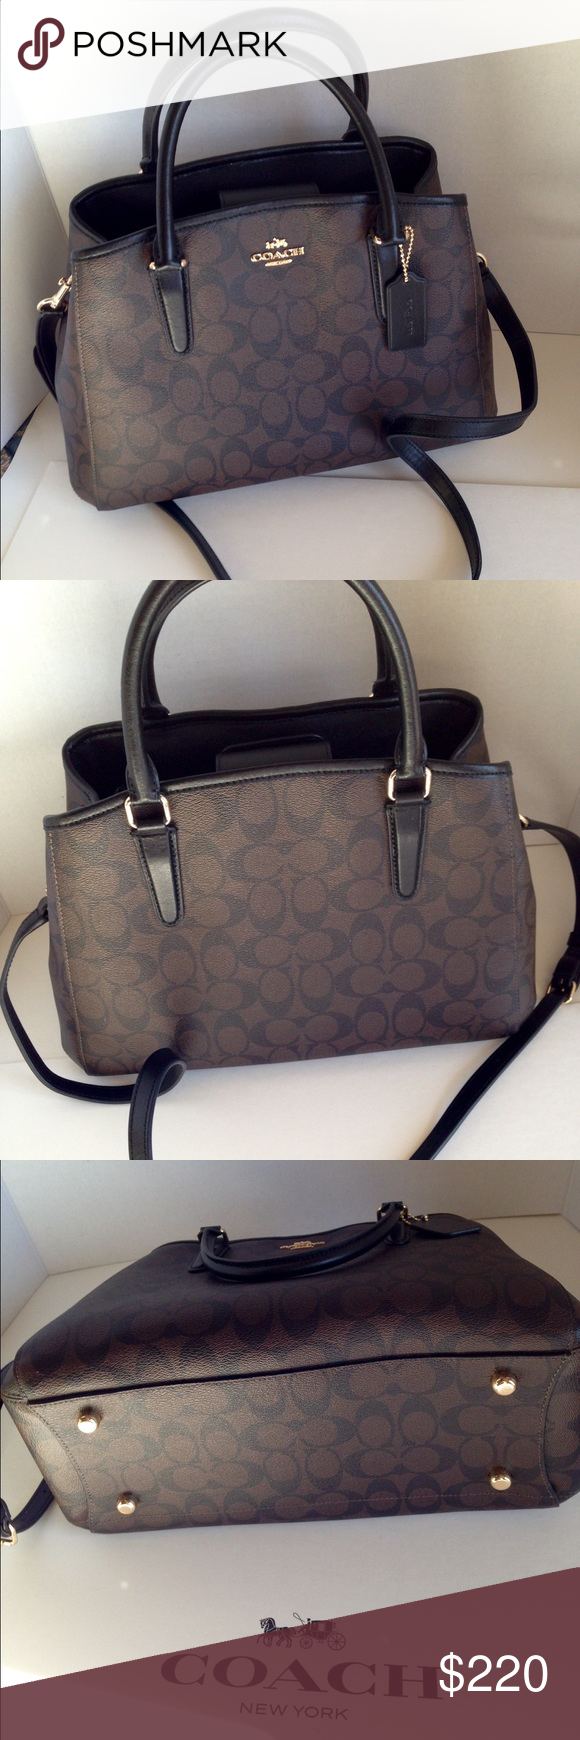 NWT Coach Margot Carryall Handbag NWT PVC coated canvas signature small  Margo carryall black brown handbag. Gold-toned hardware trimmed in black  leather. 086836f558